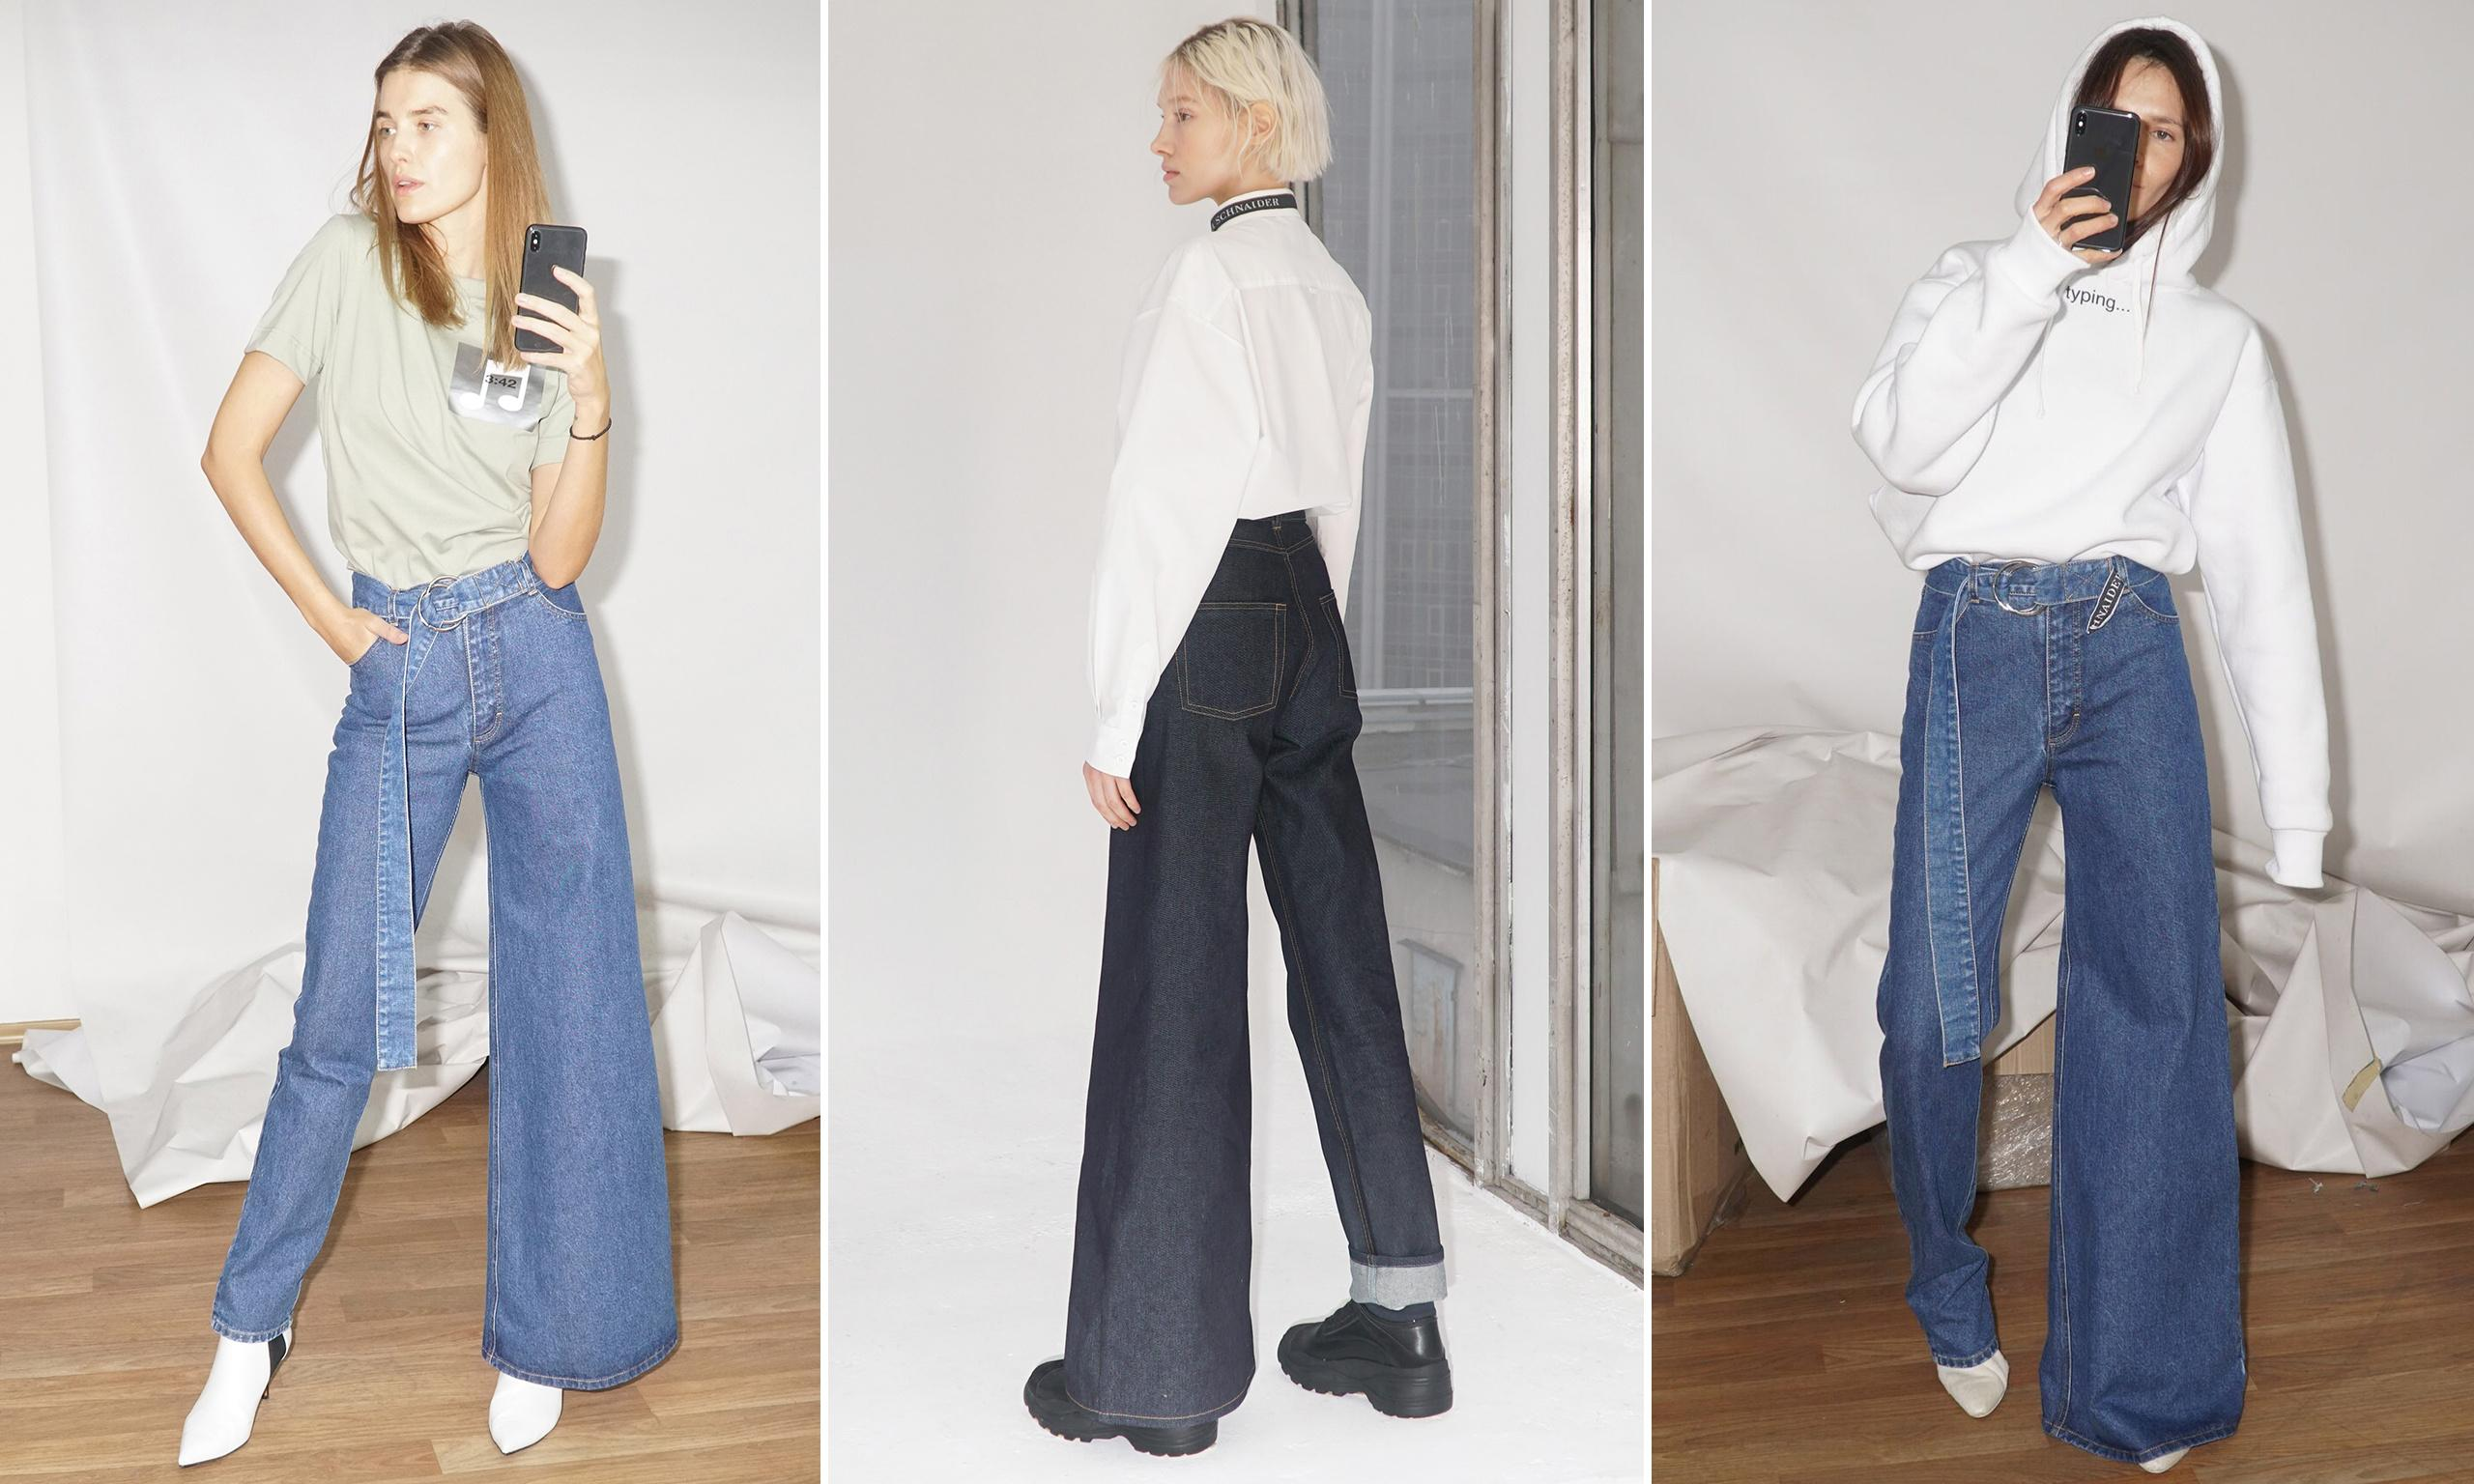 Skinny or baggy jeans? Now you can have a foot in each camp